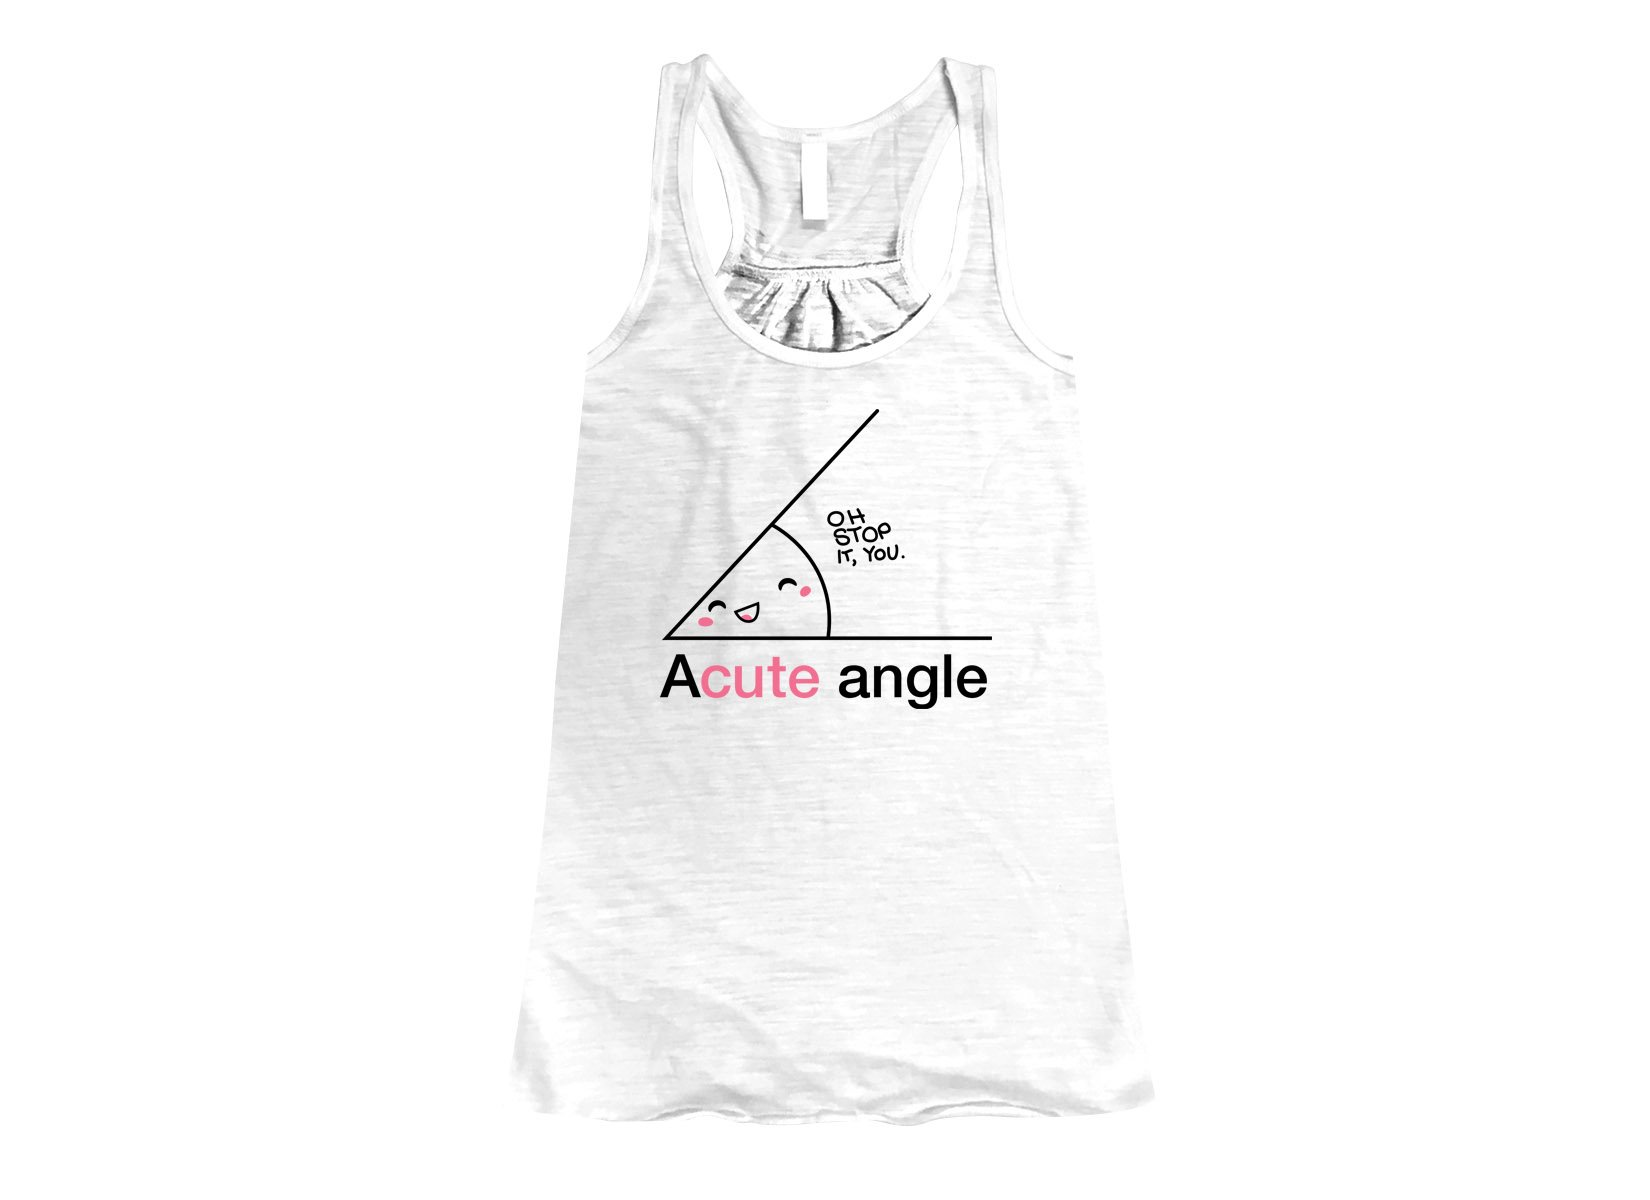 Acute Angle on Womens Tanks T-Shirt